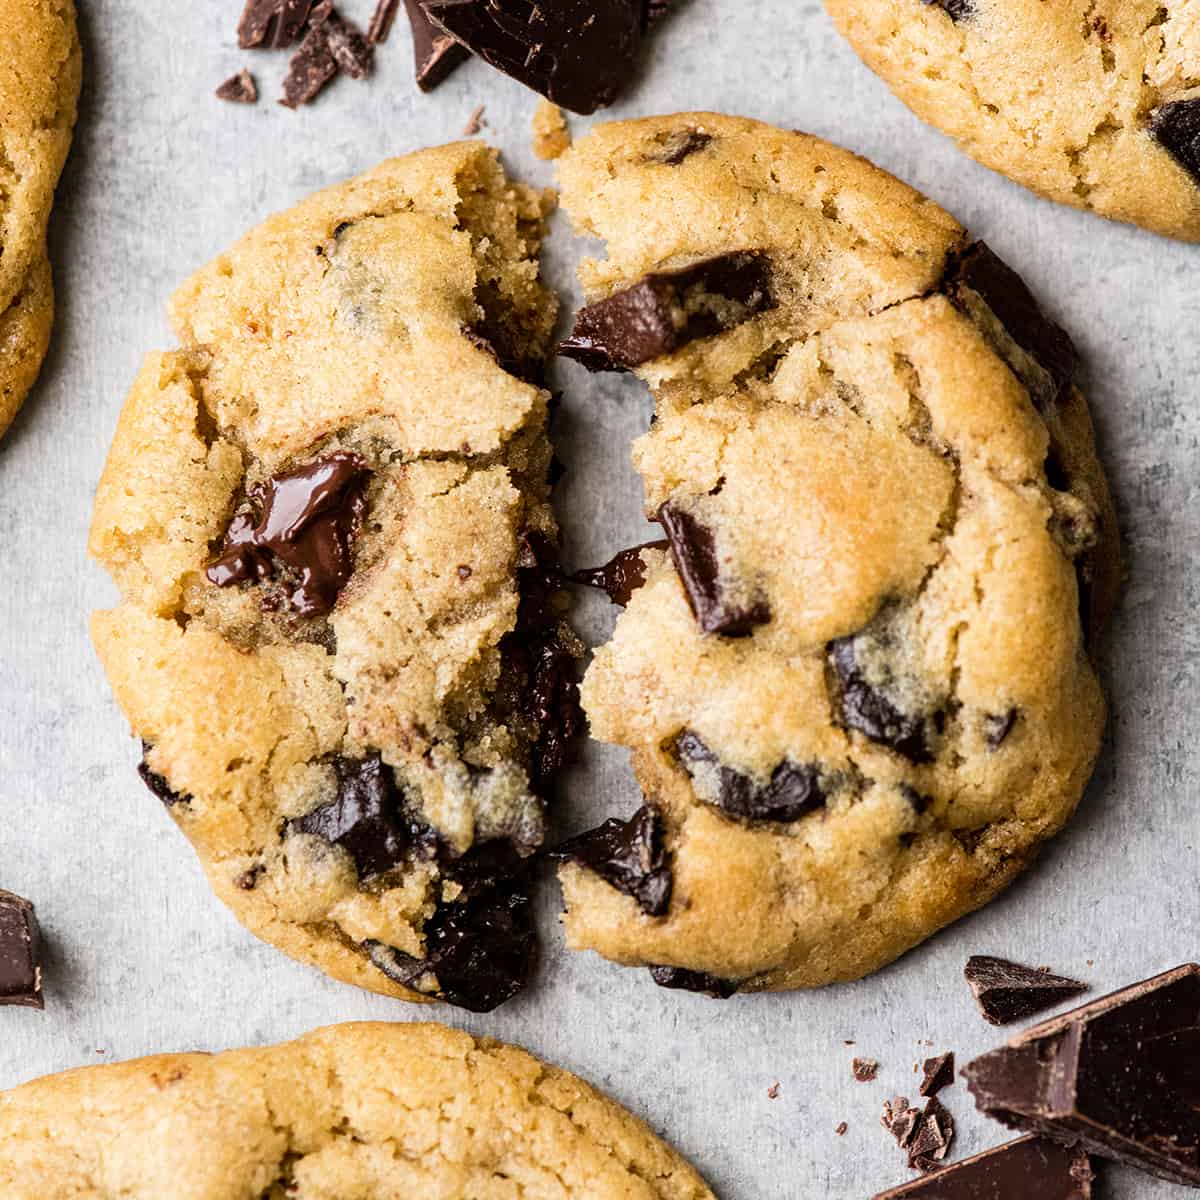 Overhead view of one chocolate chip cookie torn in half with melty chocolate chips surrounded by three other cookies and chopped chocolate